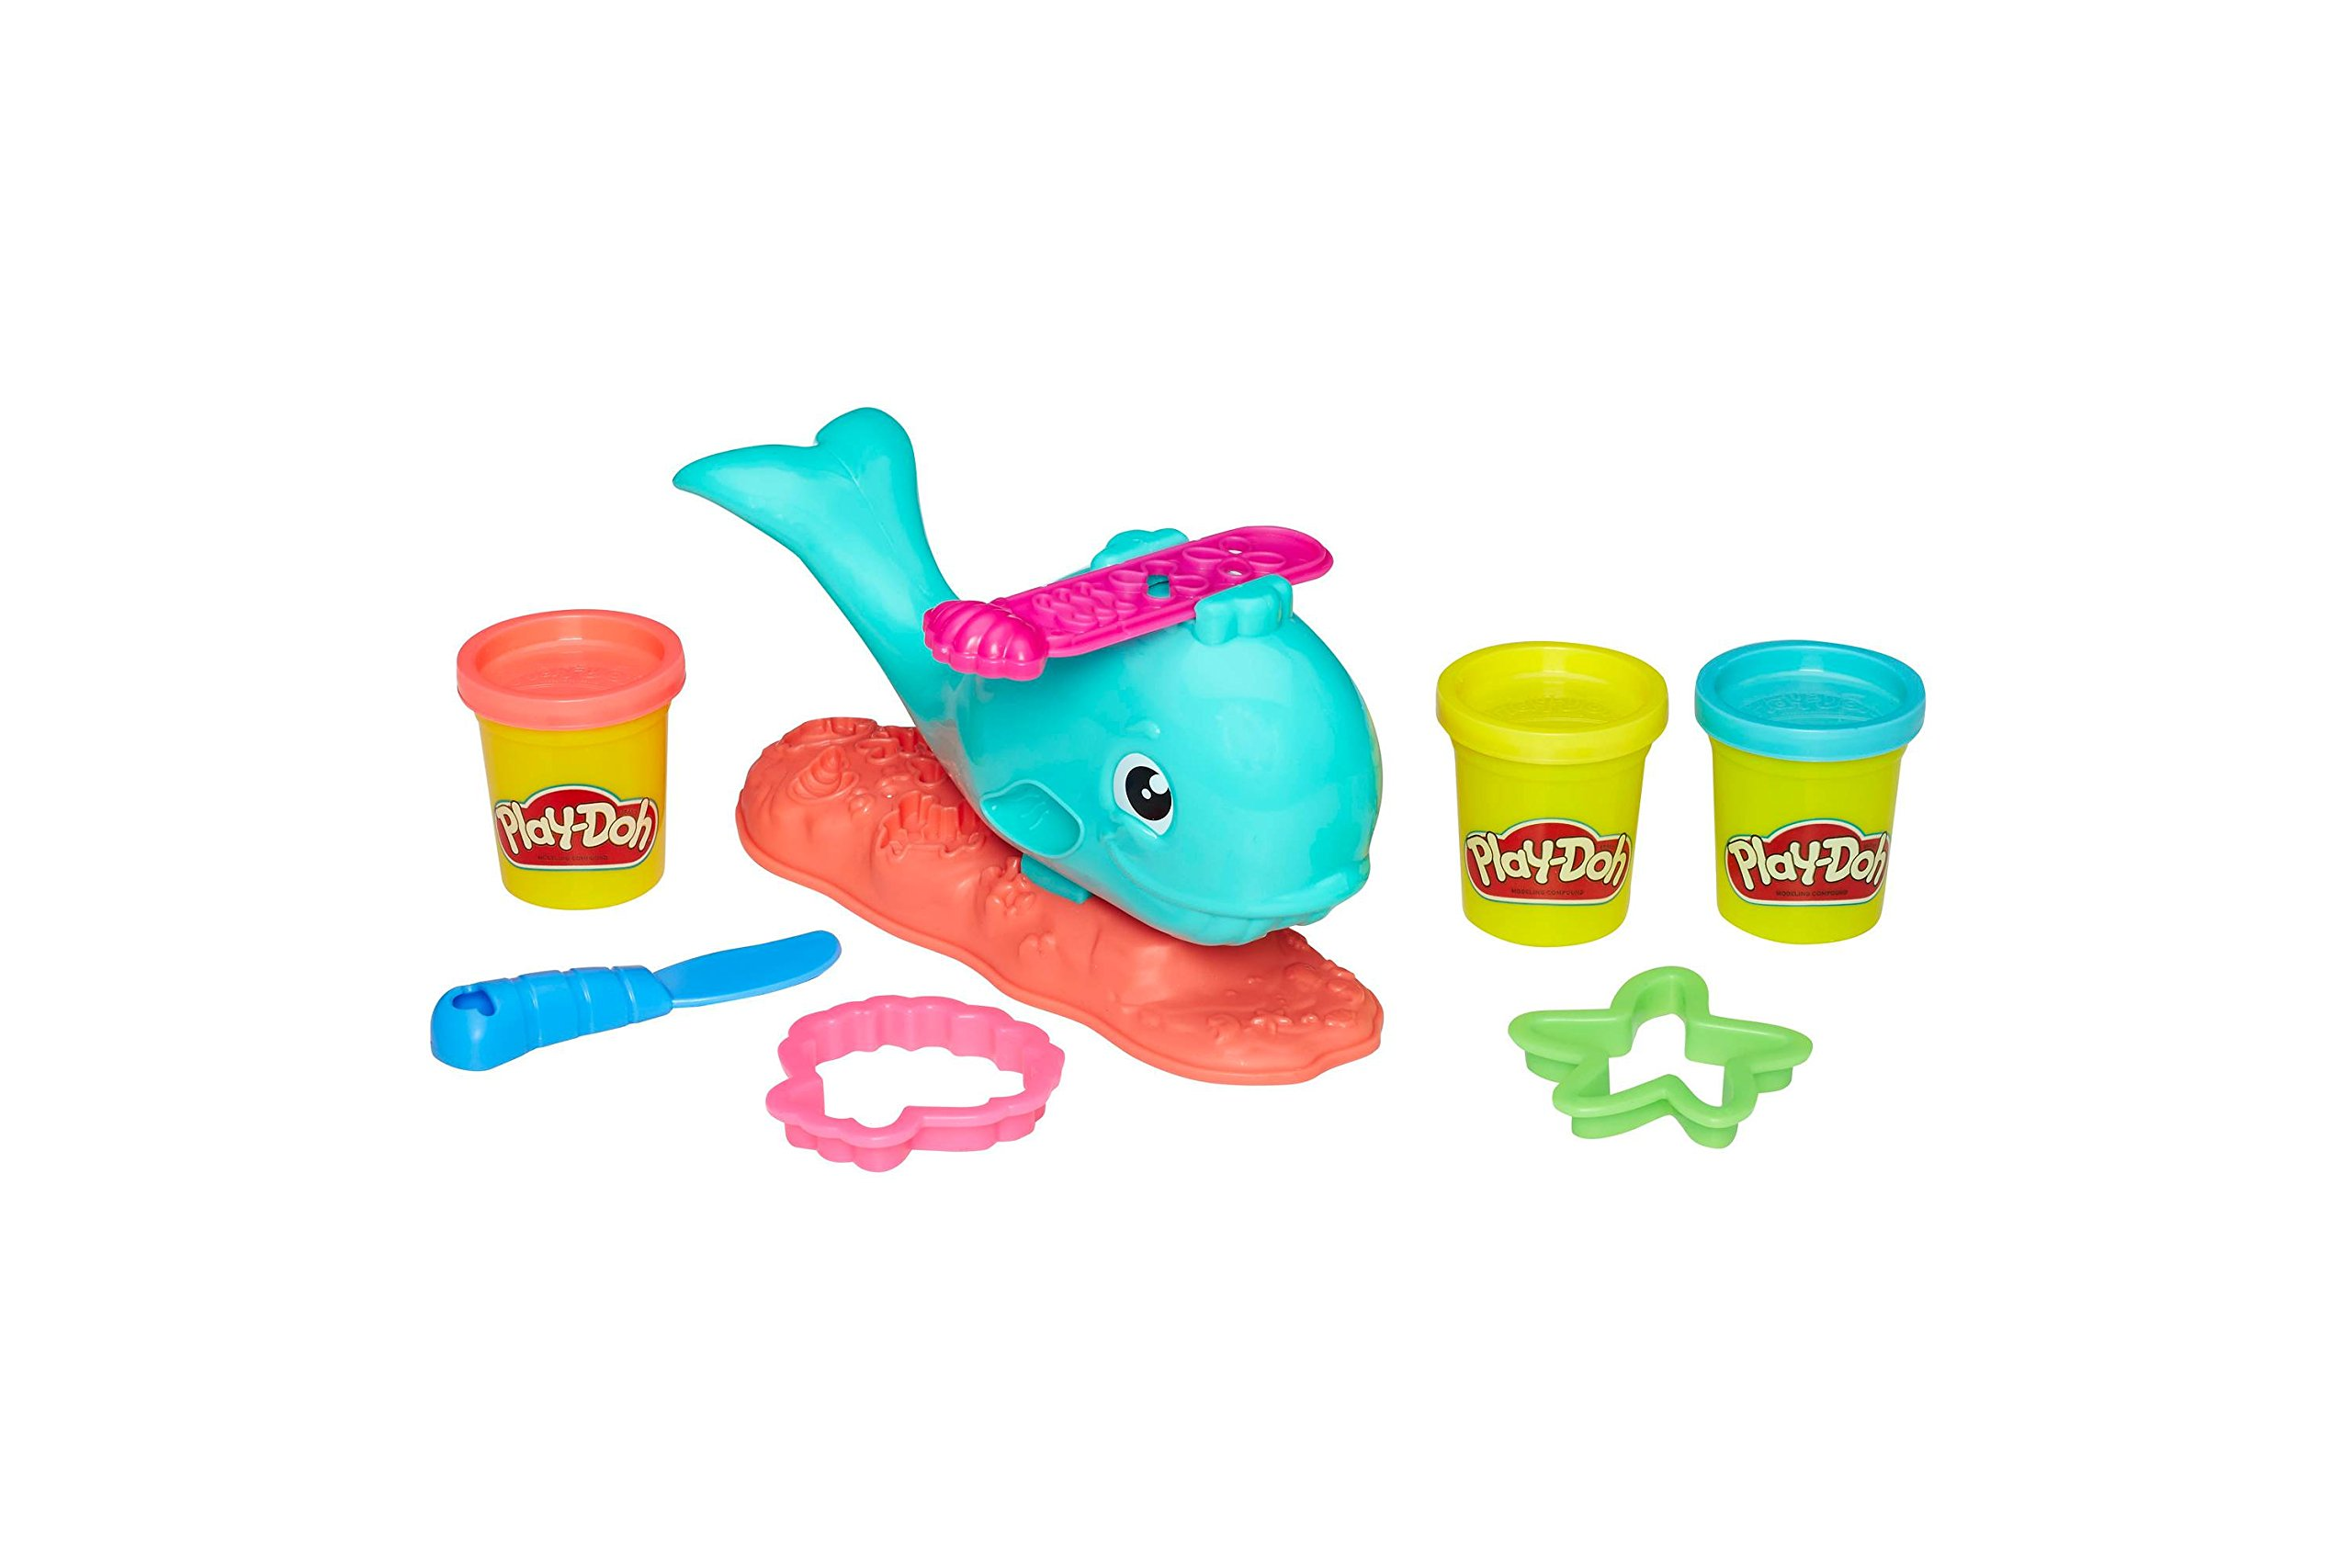 Play-Doh Wavy the Whale + Play-Doh Plus Compound Bundle by PD